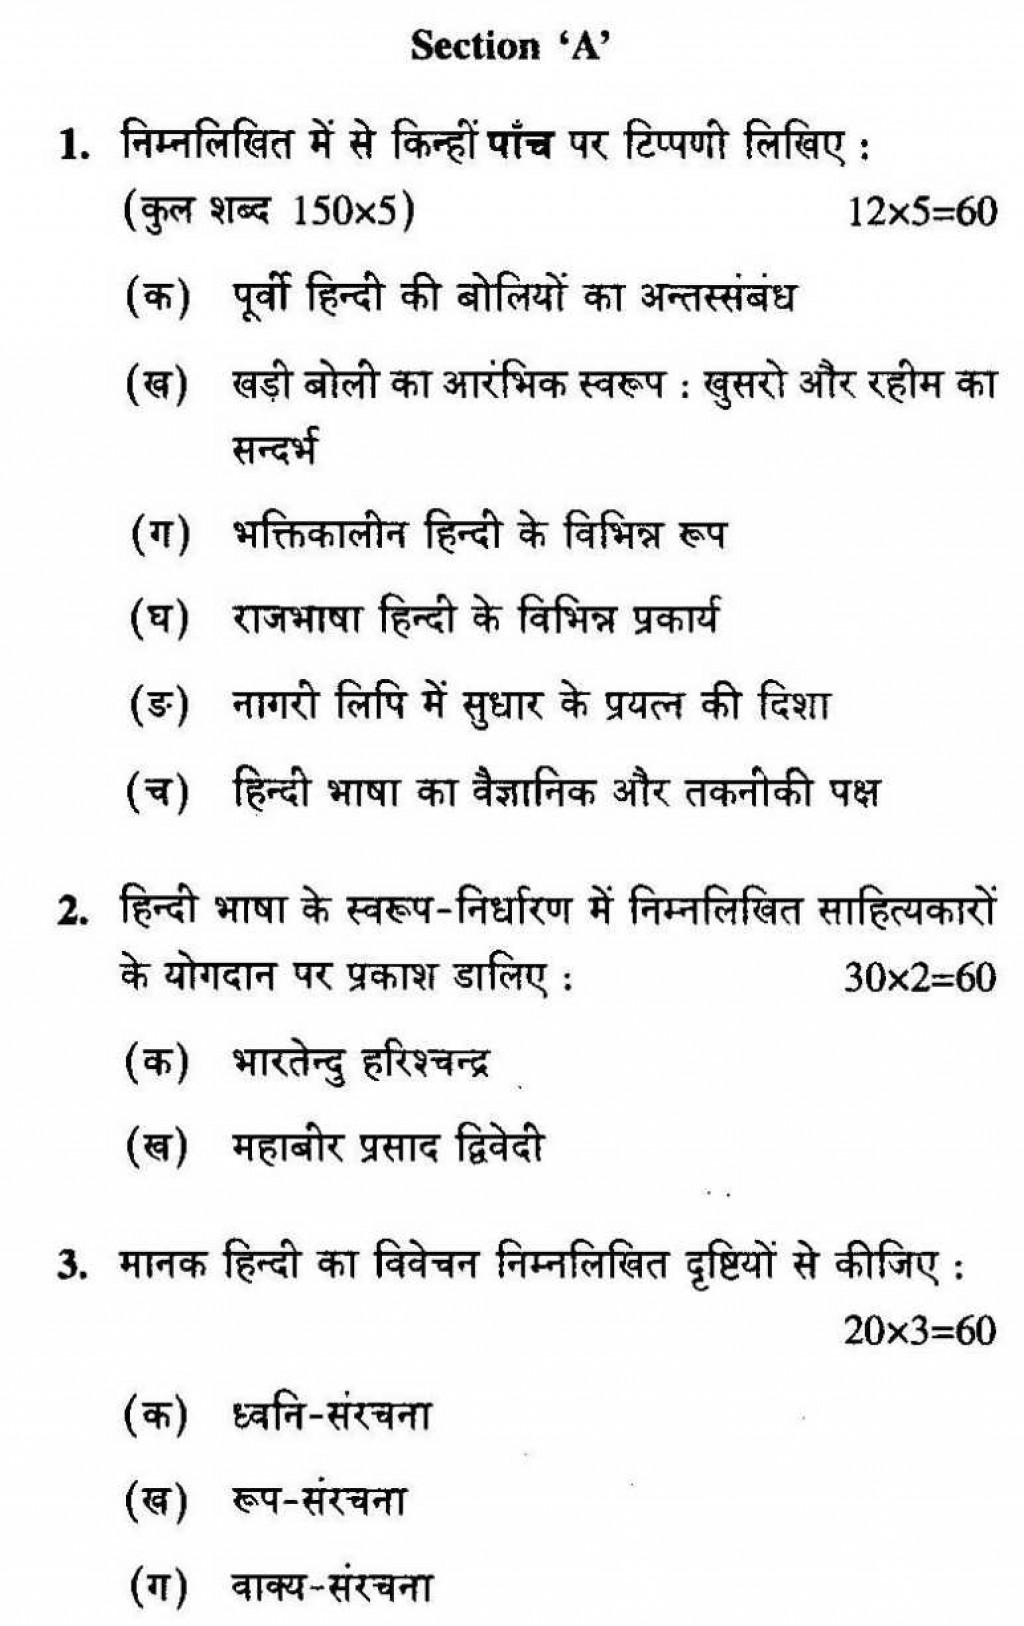 012 Apa Essay Paper Custom Thesis Resume Writing Question For Hindi Literat College Topics Common App Examples Prompts Example Rare 2015-16 Large